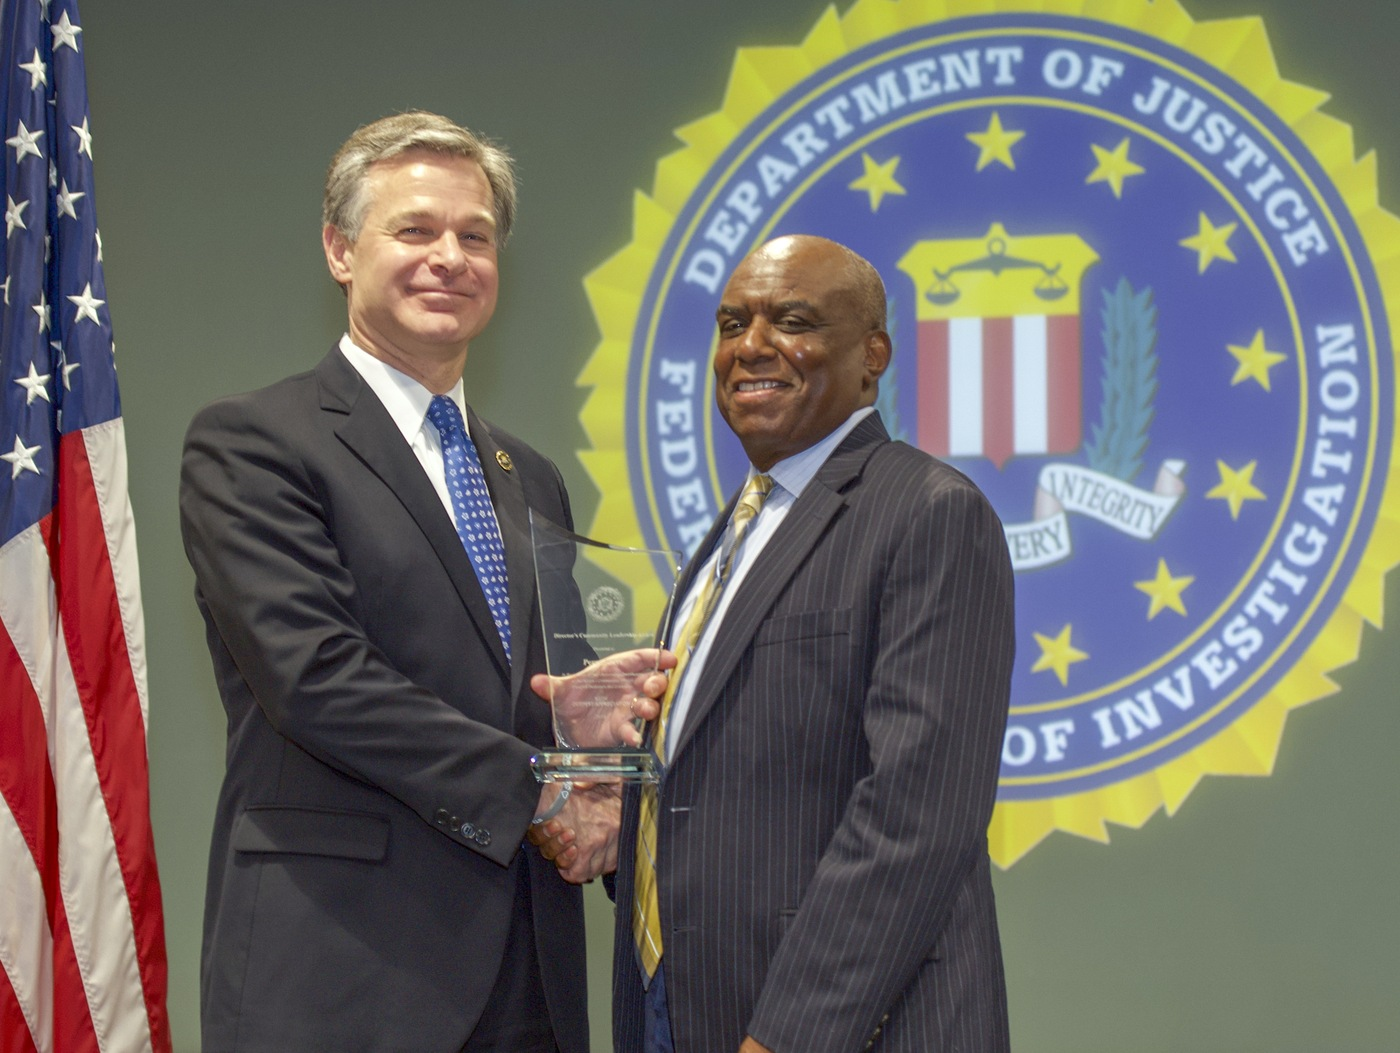 FBI Director Christopher Wray presents Newark Division recipient Perry Mays with the Director's Community Leadership Award (DCLA) at a ceremony at FBI Headquarters on May 3, 2019.